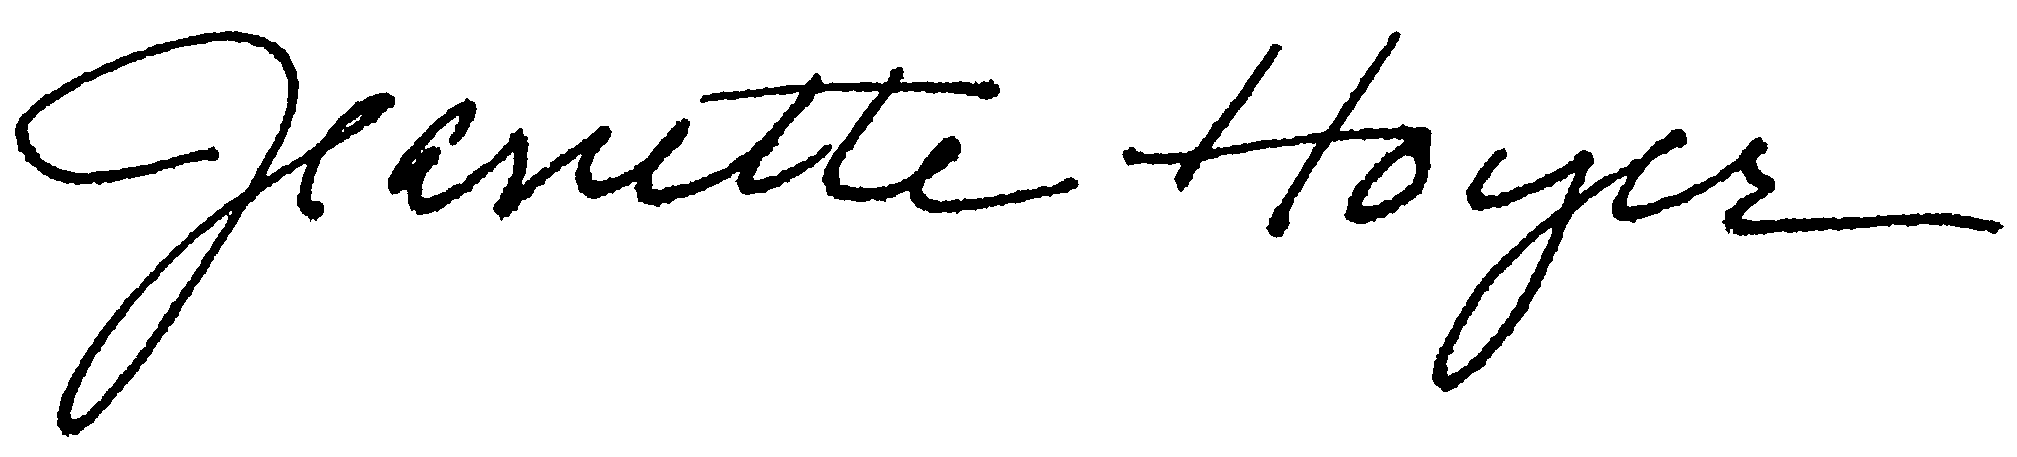 Jeanette-Hoyer-Signature